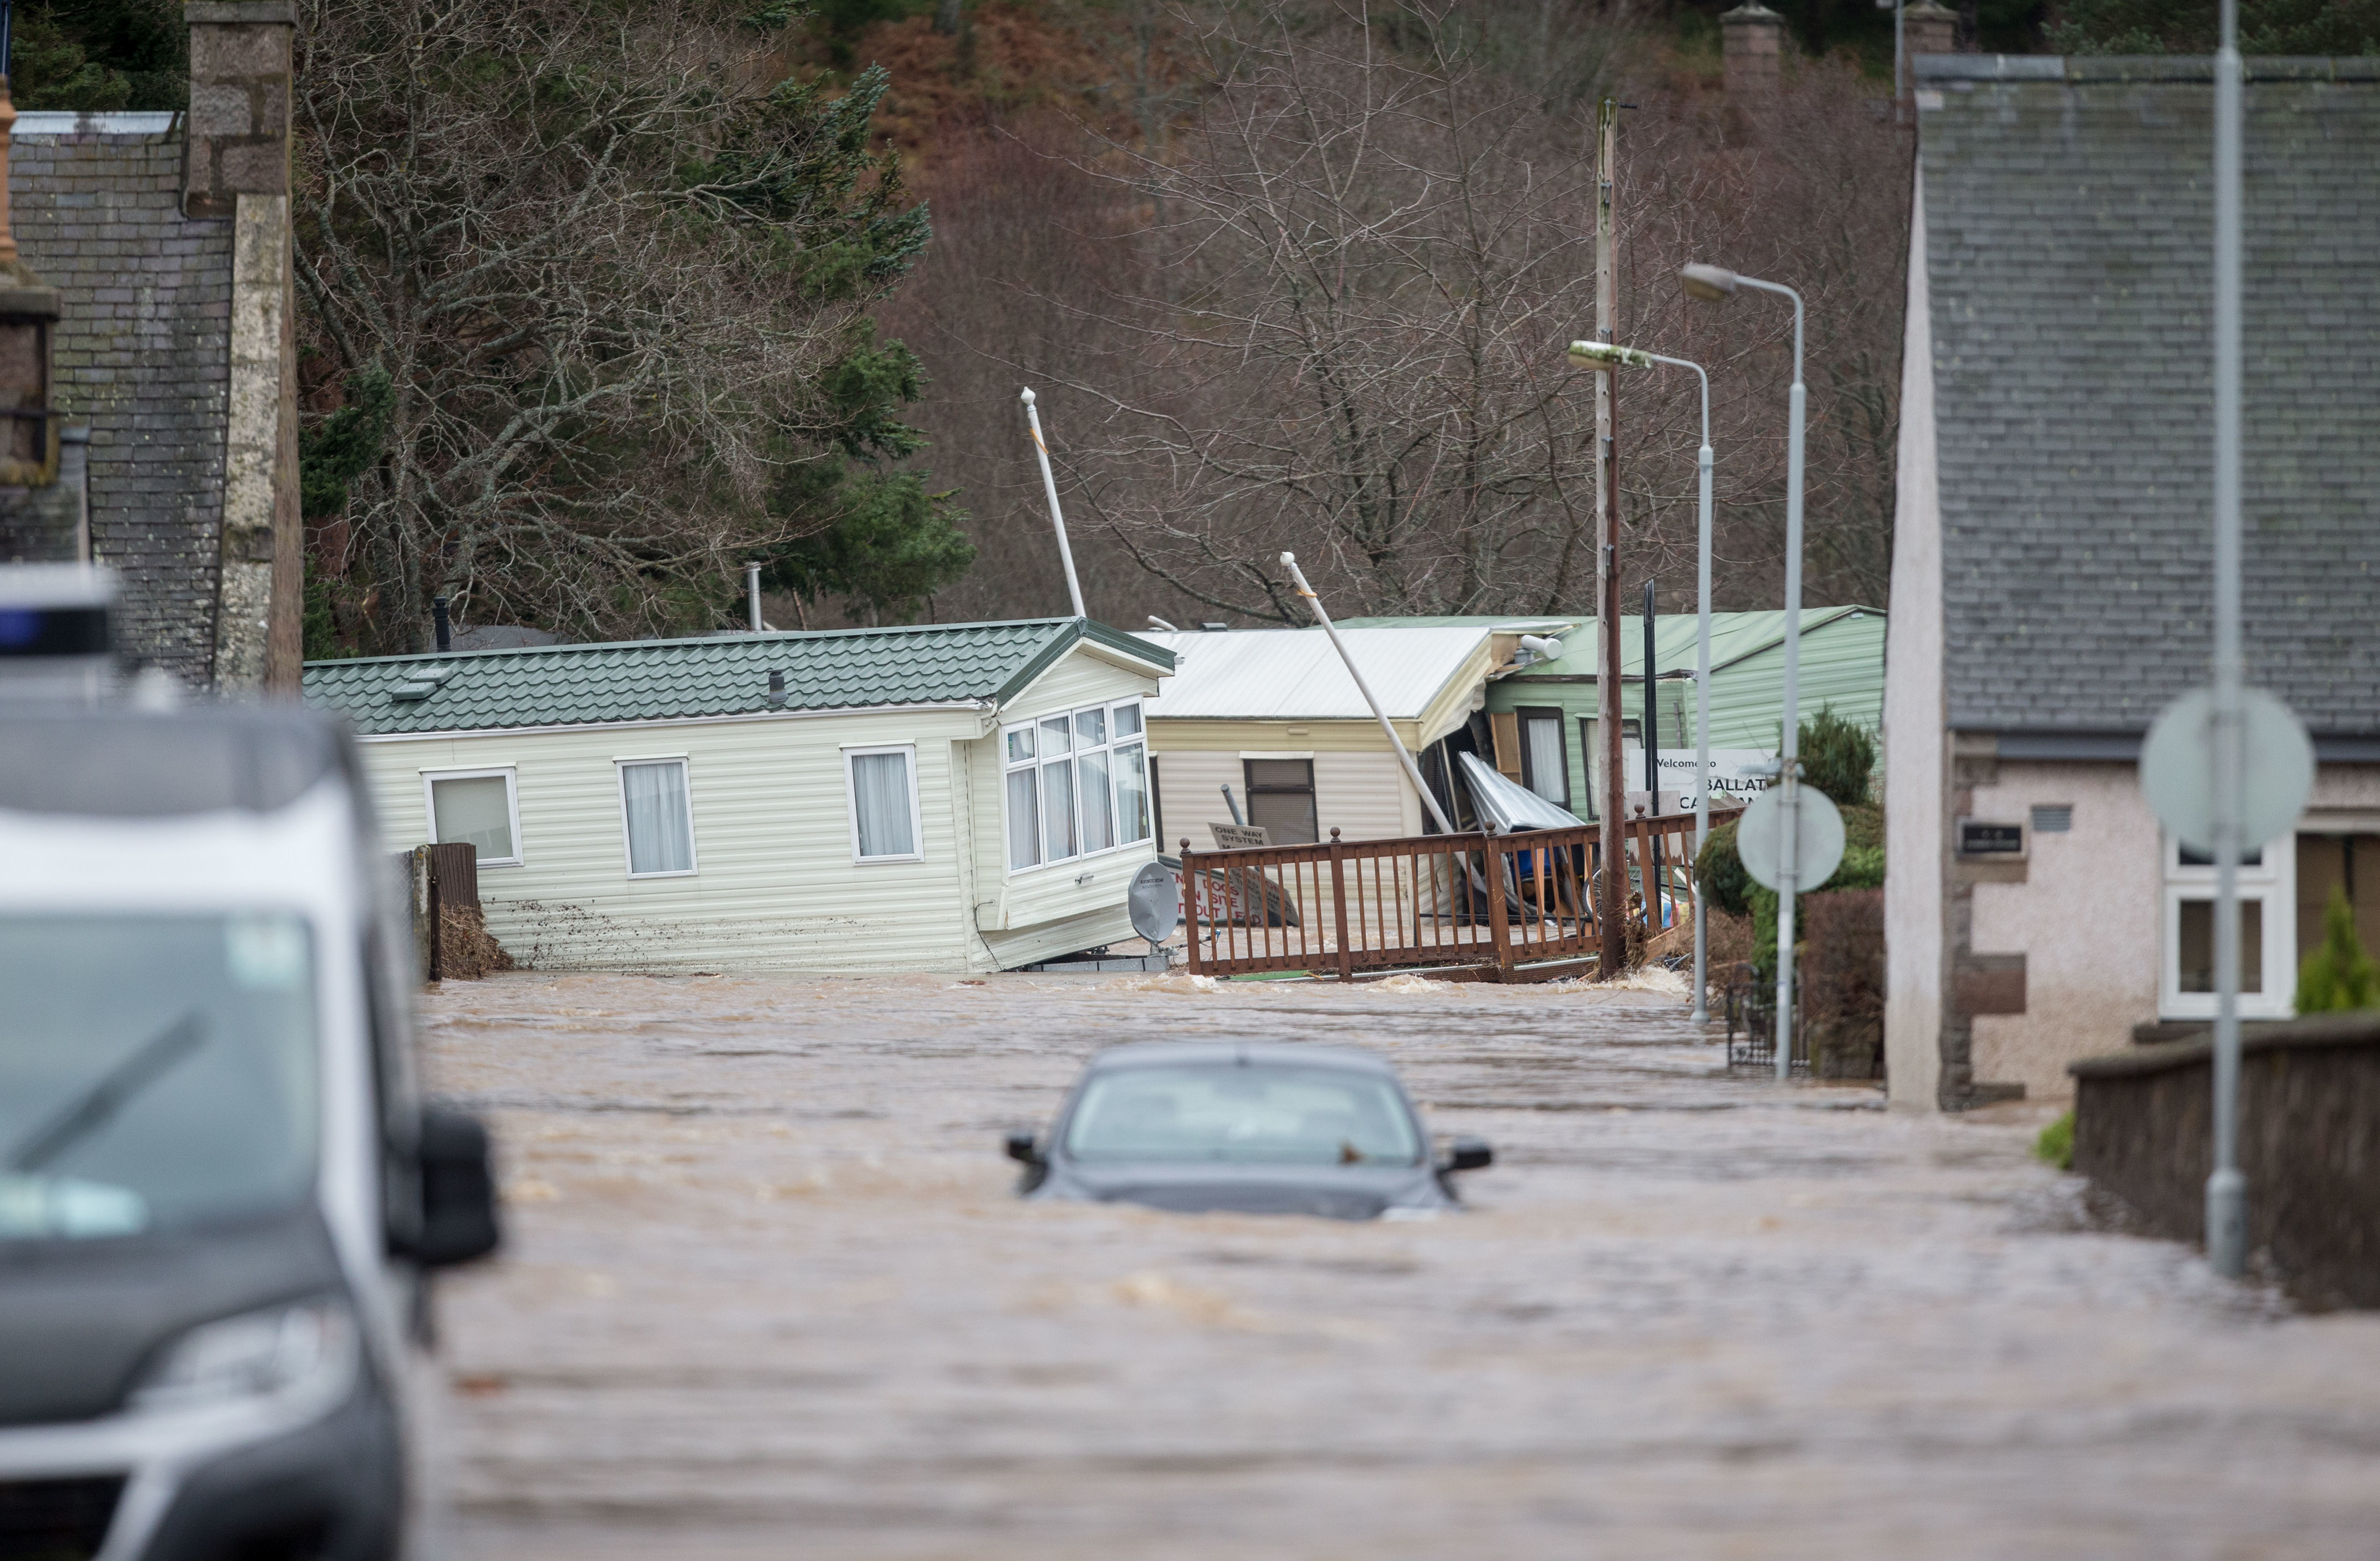 destruction :  Severe flooding in Ballater after the River Dee burst its banks.